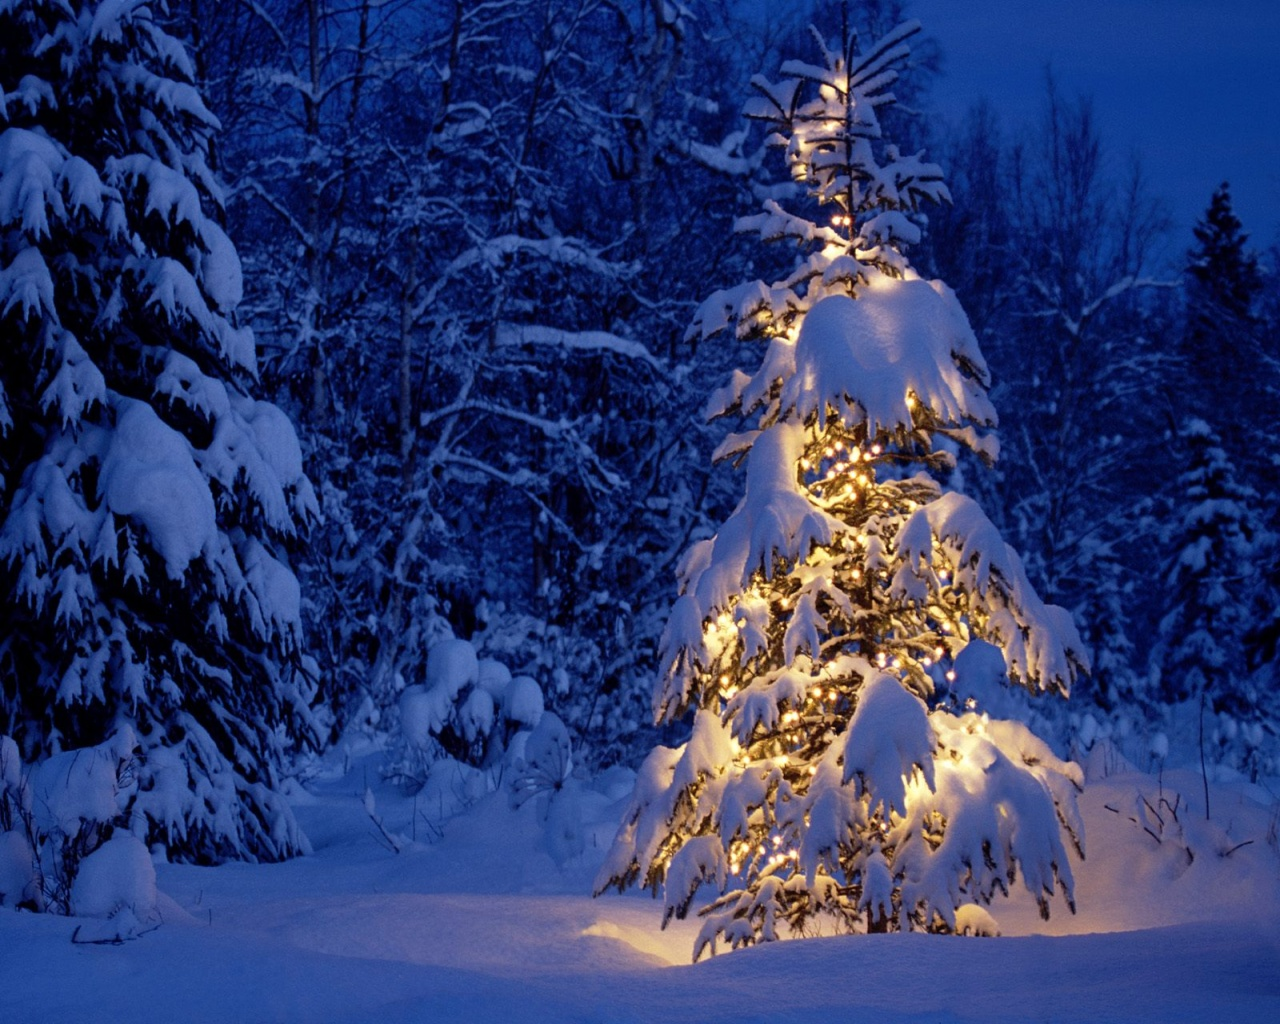 1280x1024 Christmas Wallpaper